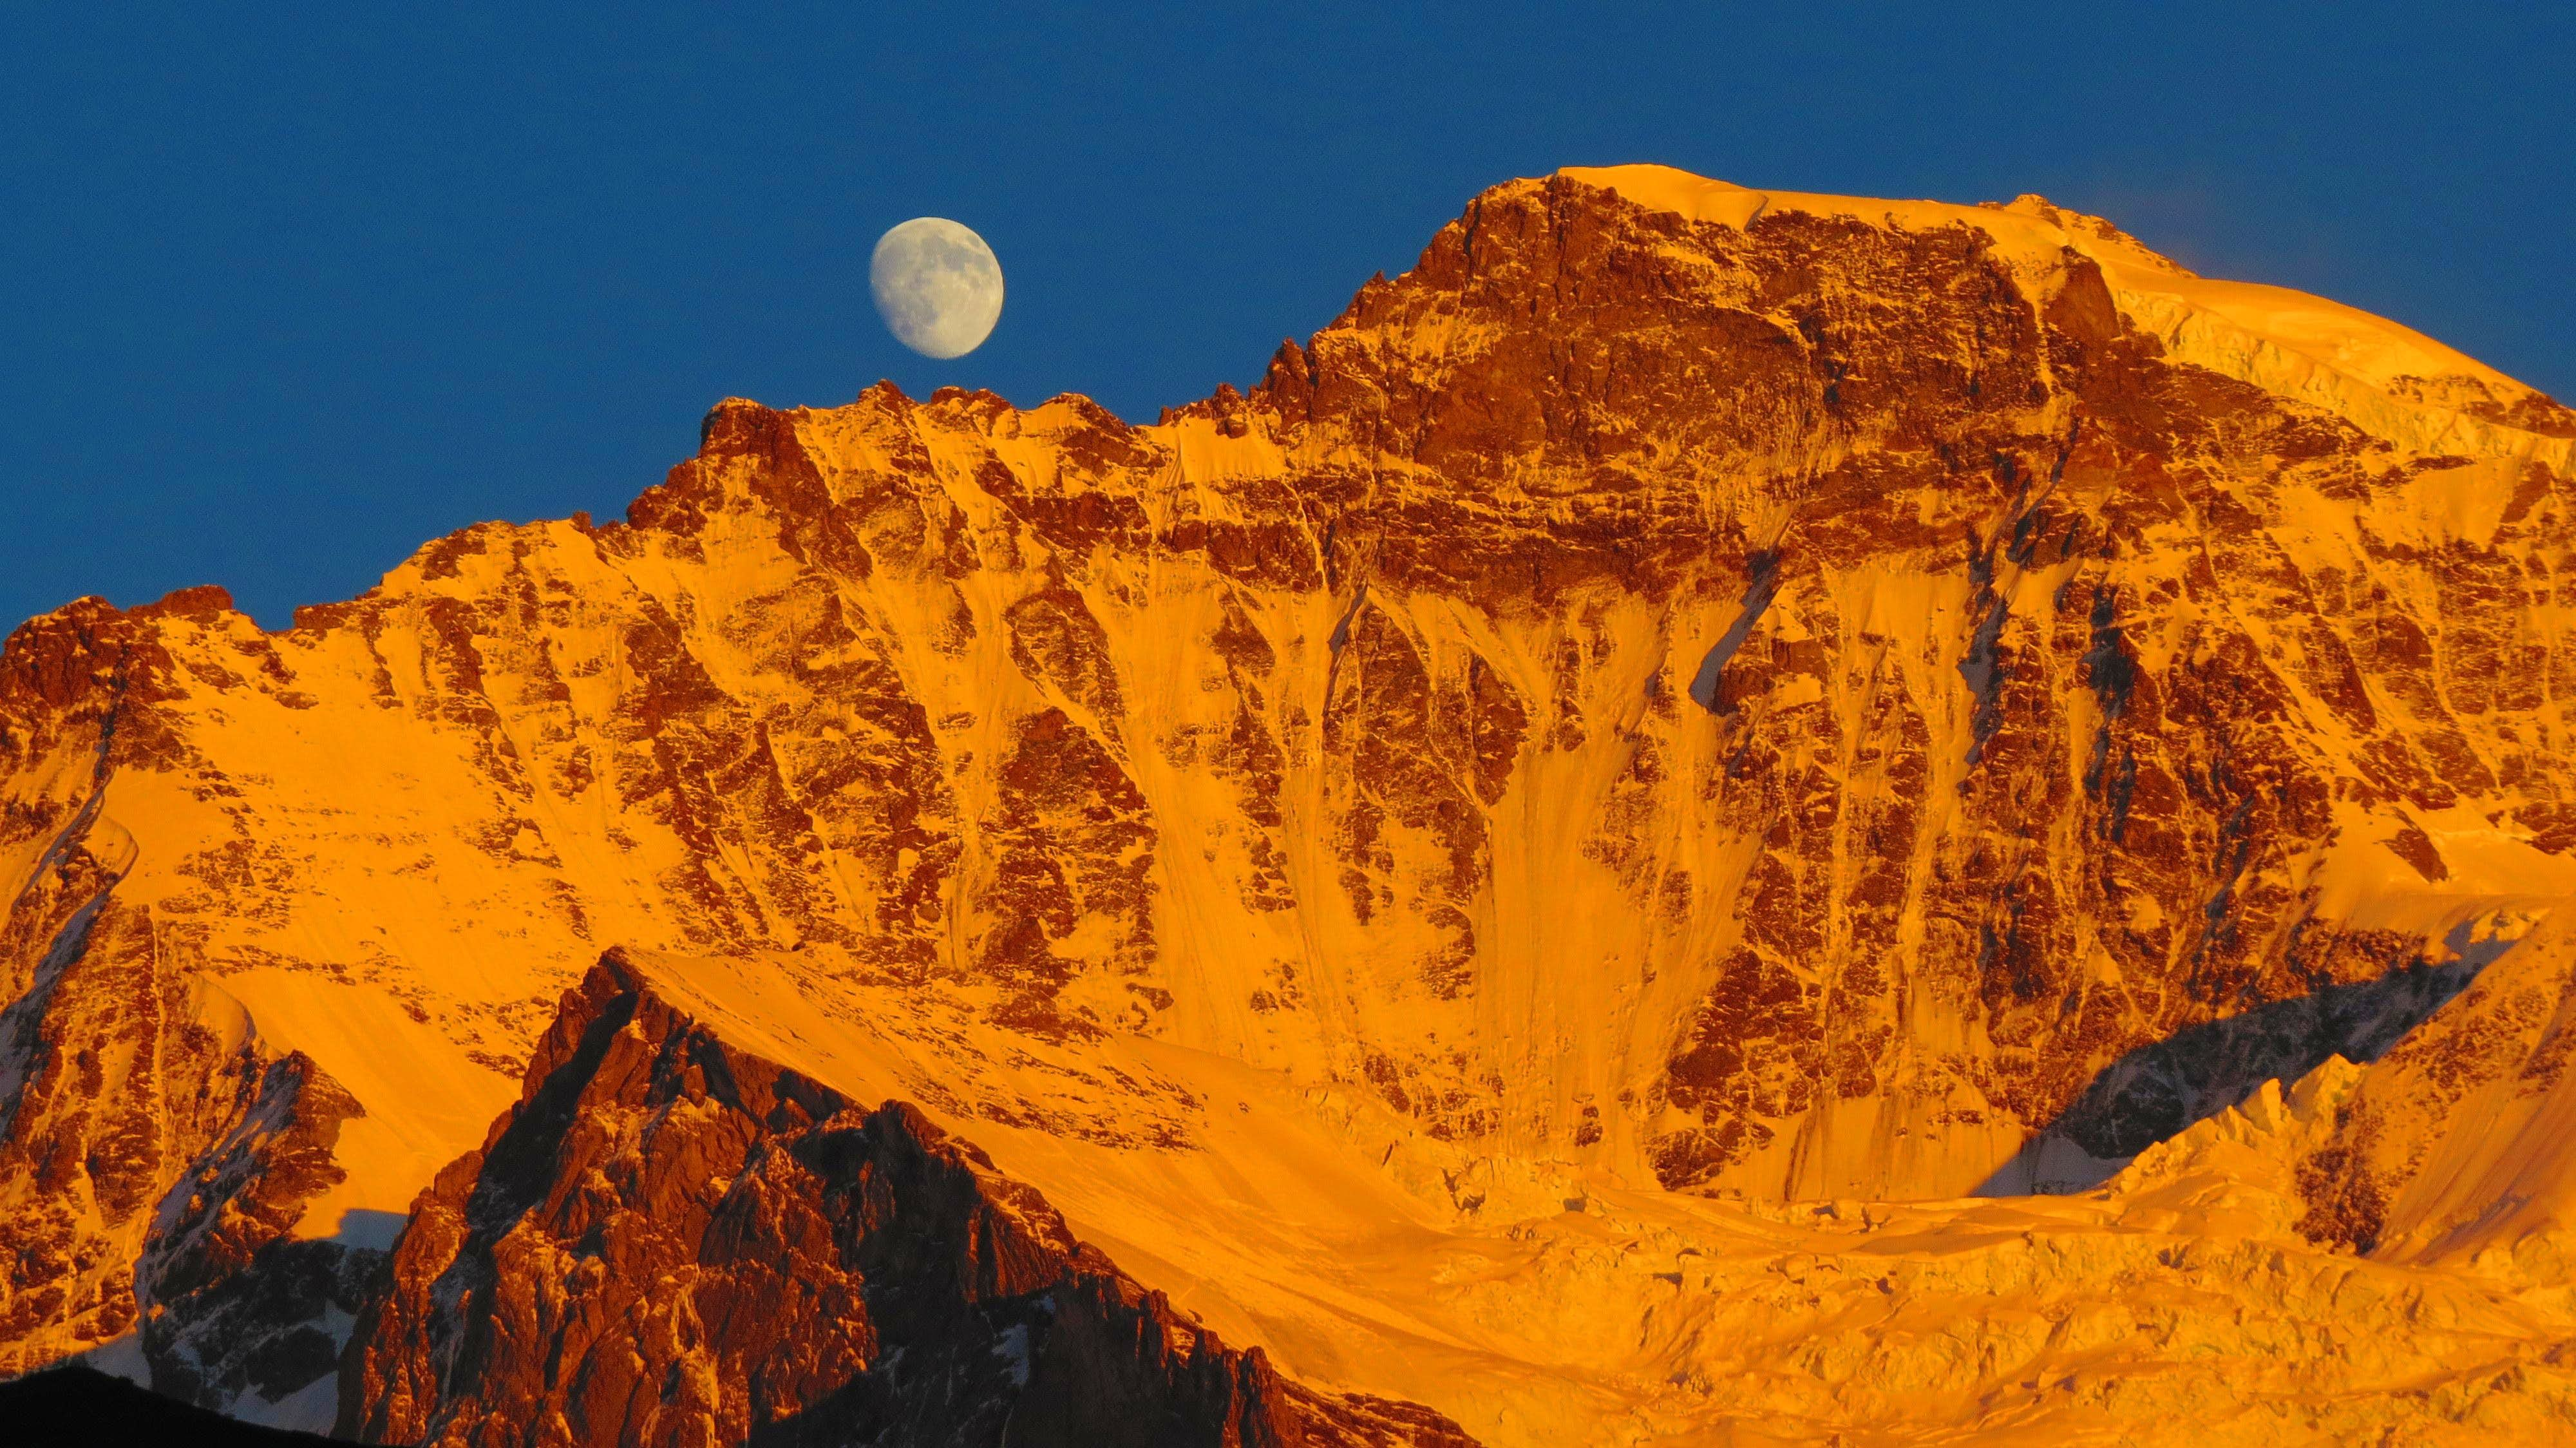 Moon rises up over Jungfrau west ridge